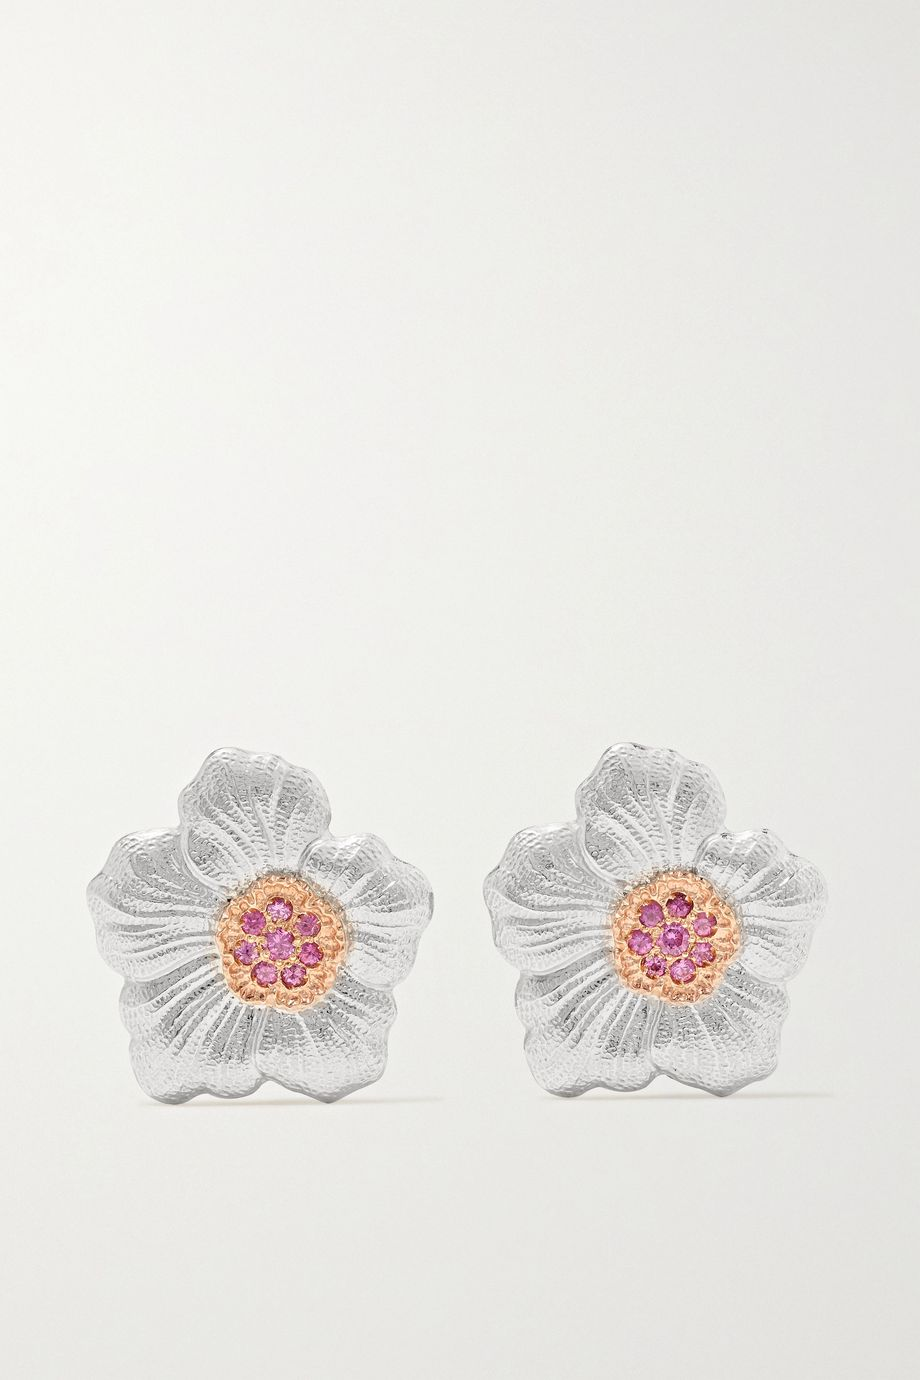 Buccellati Gardenia sterling silver and pink gold vermeil sapphire earrings